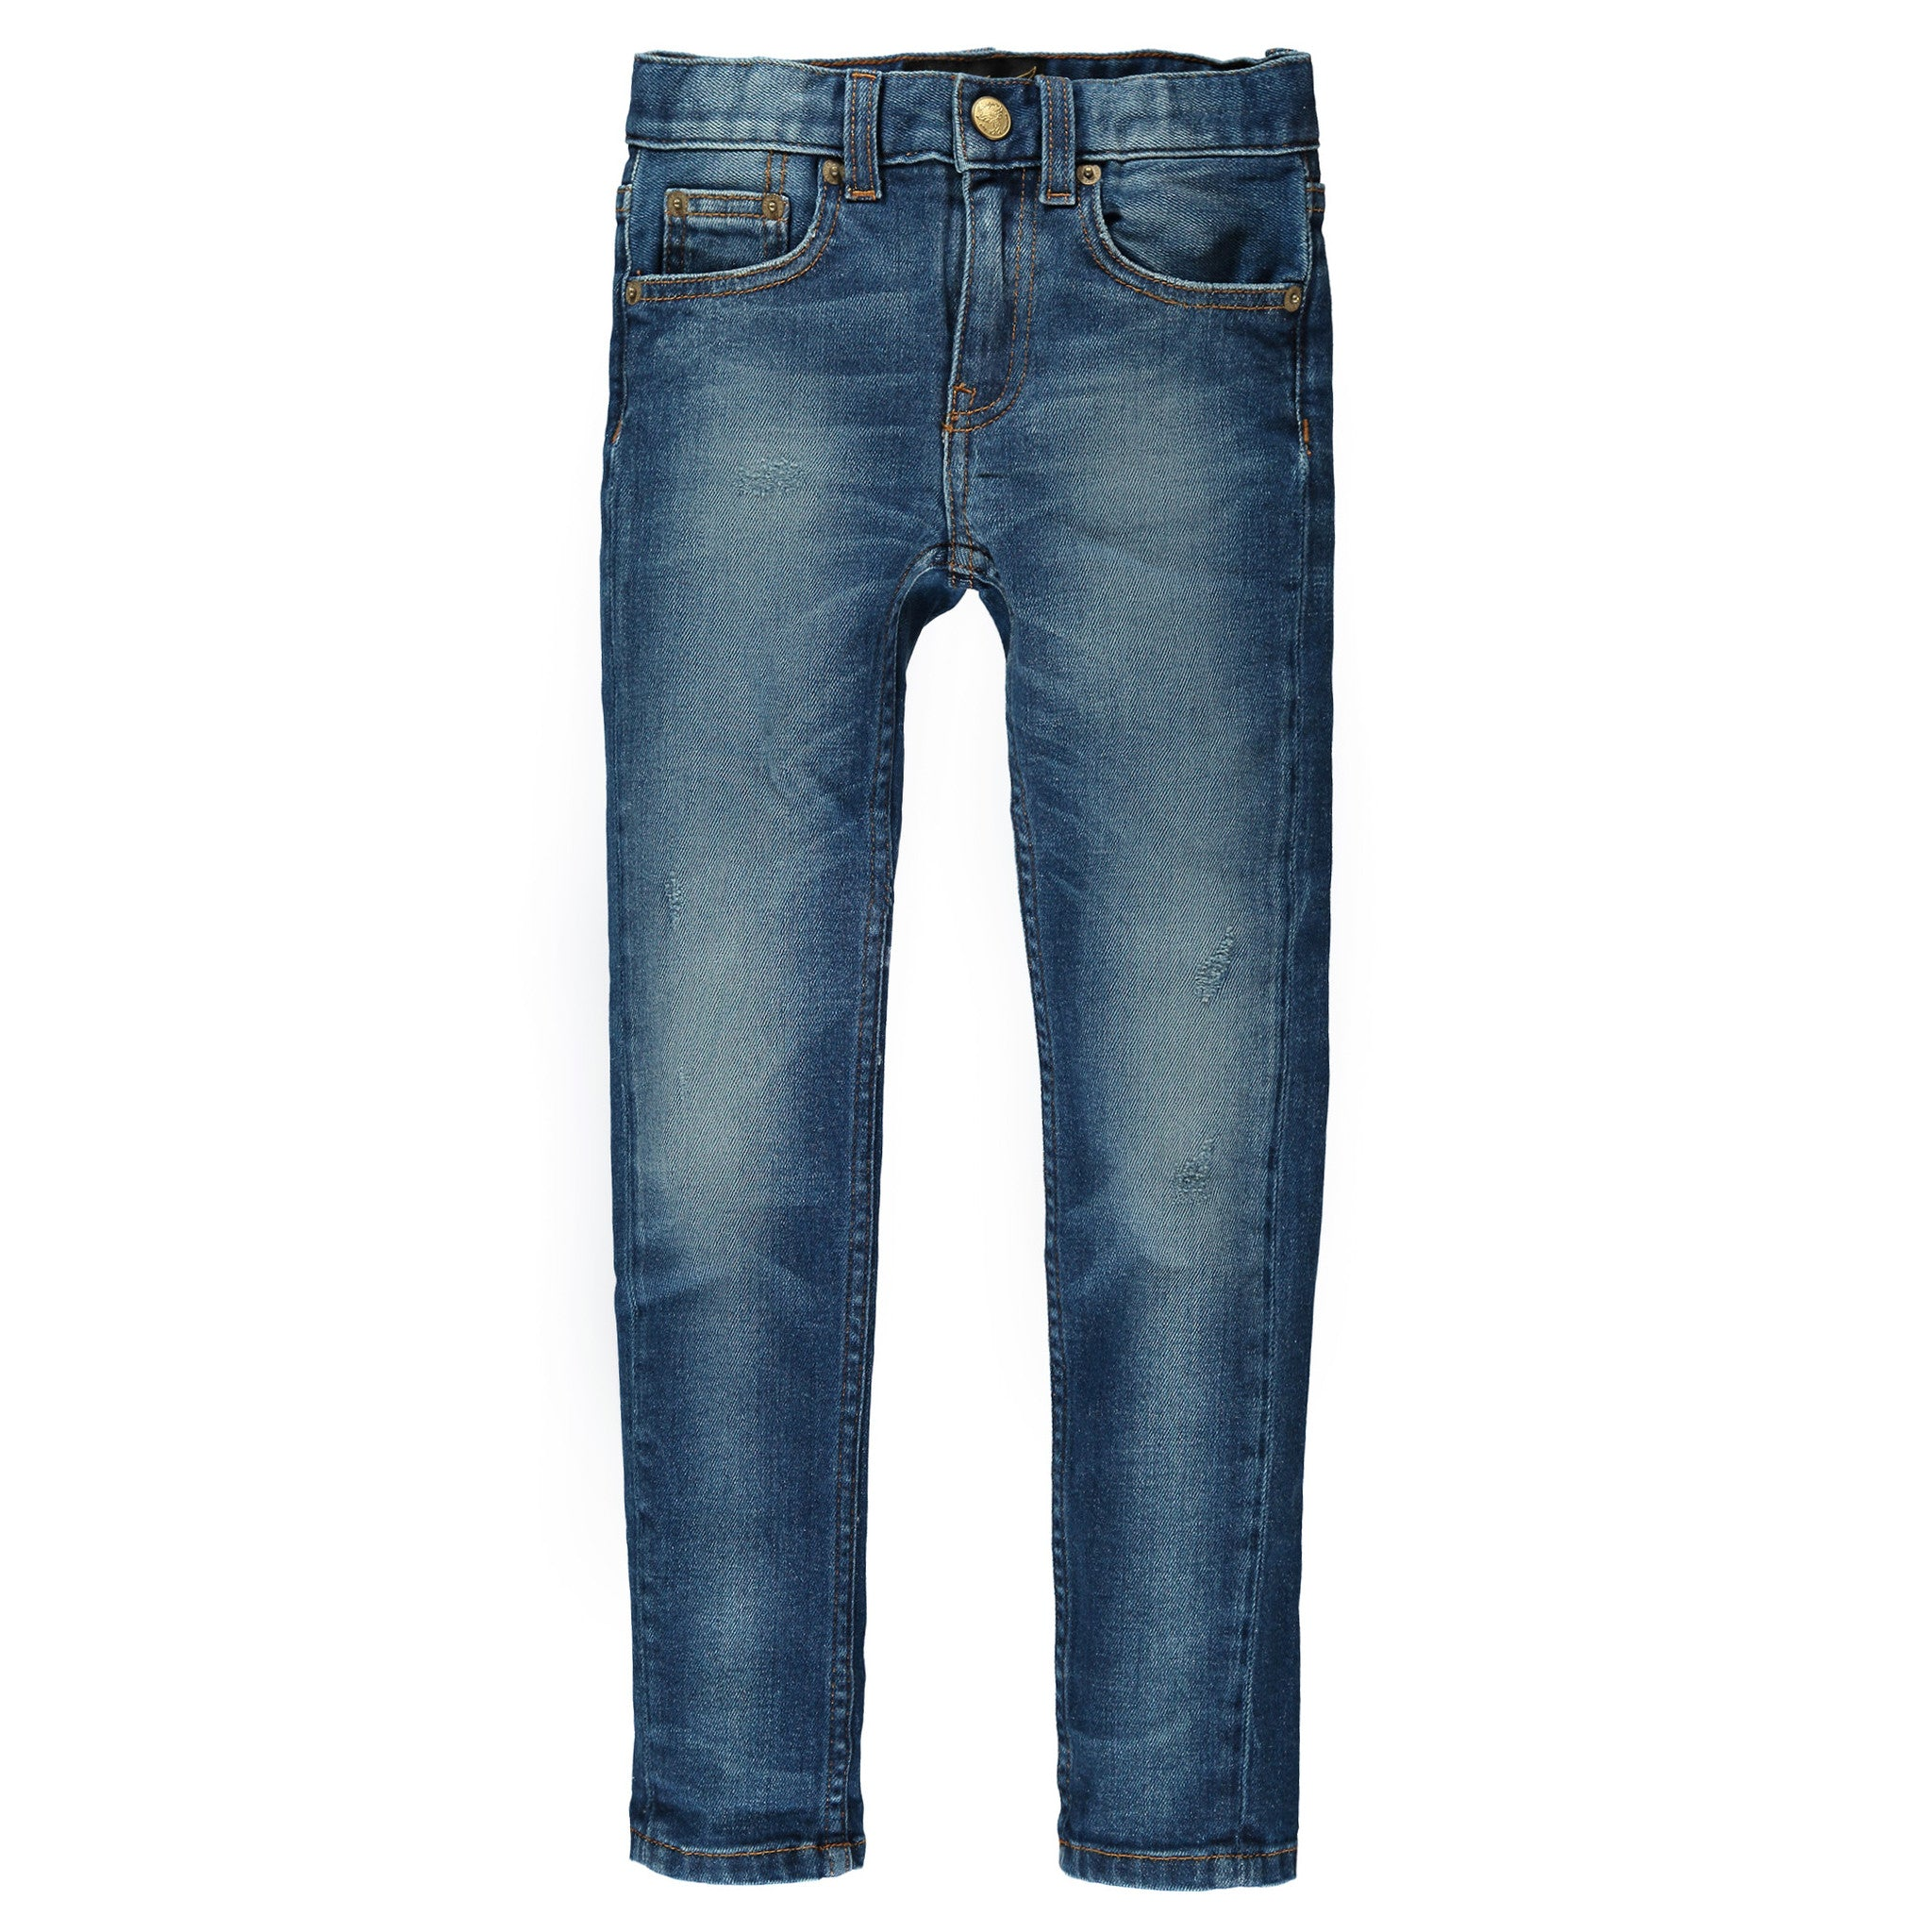 ICON Dirty Blue - Unisex 5 Pocket Slim Fit Jeans